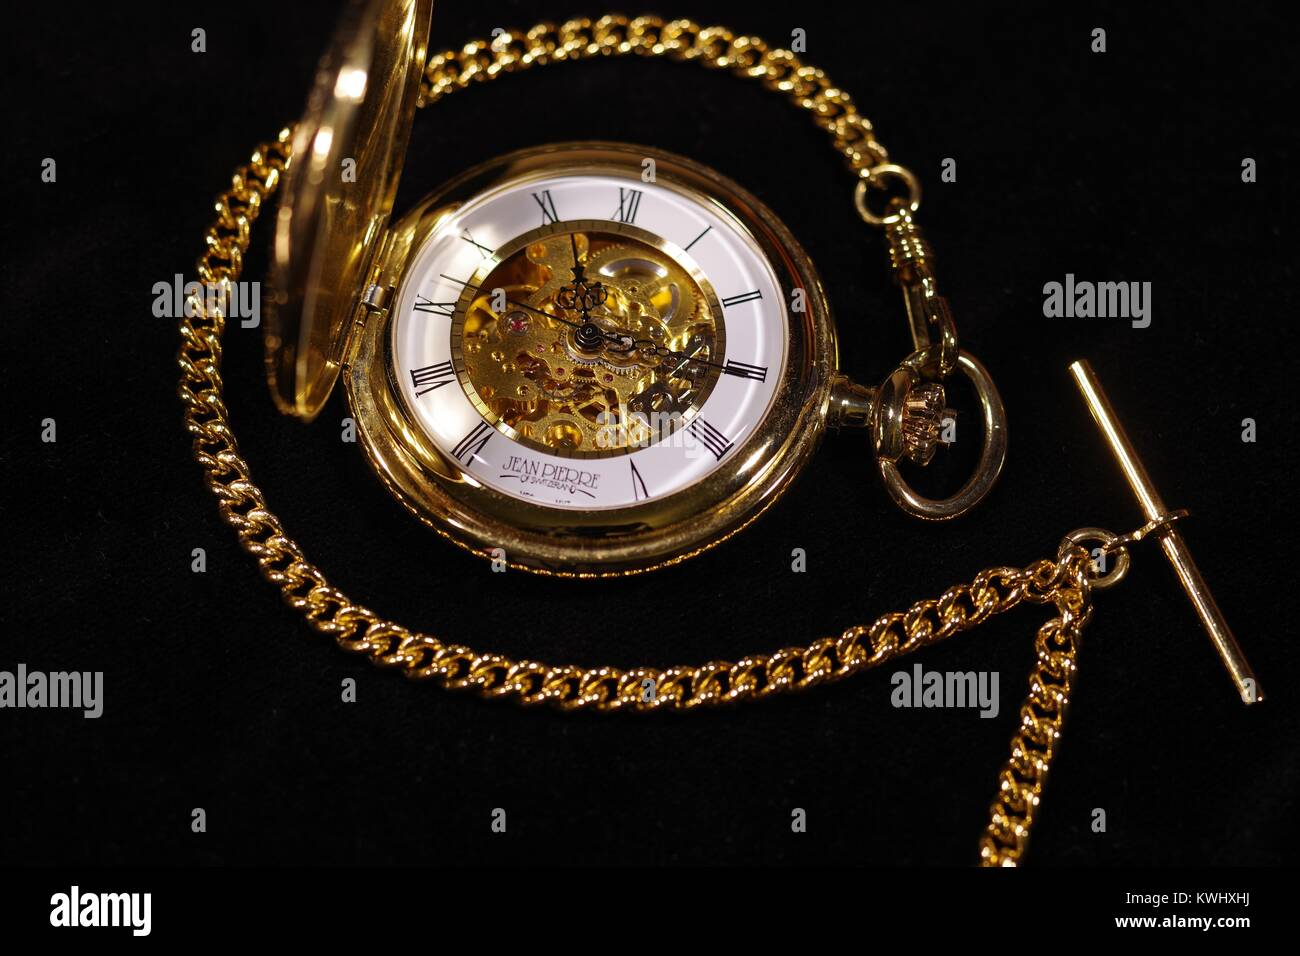 Half Hunter Gold Plated Pocket Watch Timepiece by Jean Pierre, on Black Velvet. Macro, Exeter, Devon, UK. January, - Stock Image